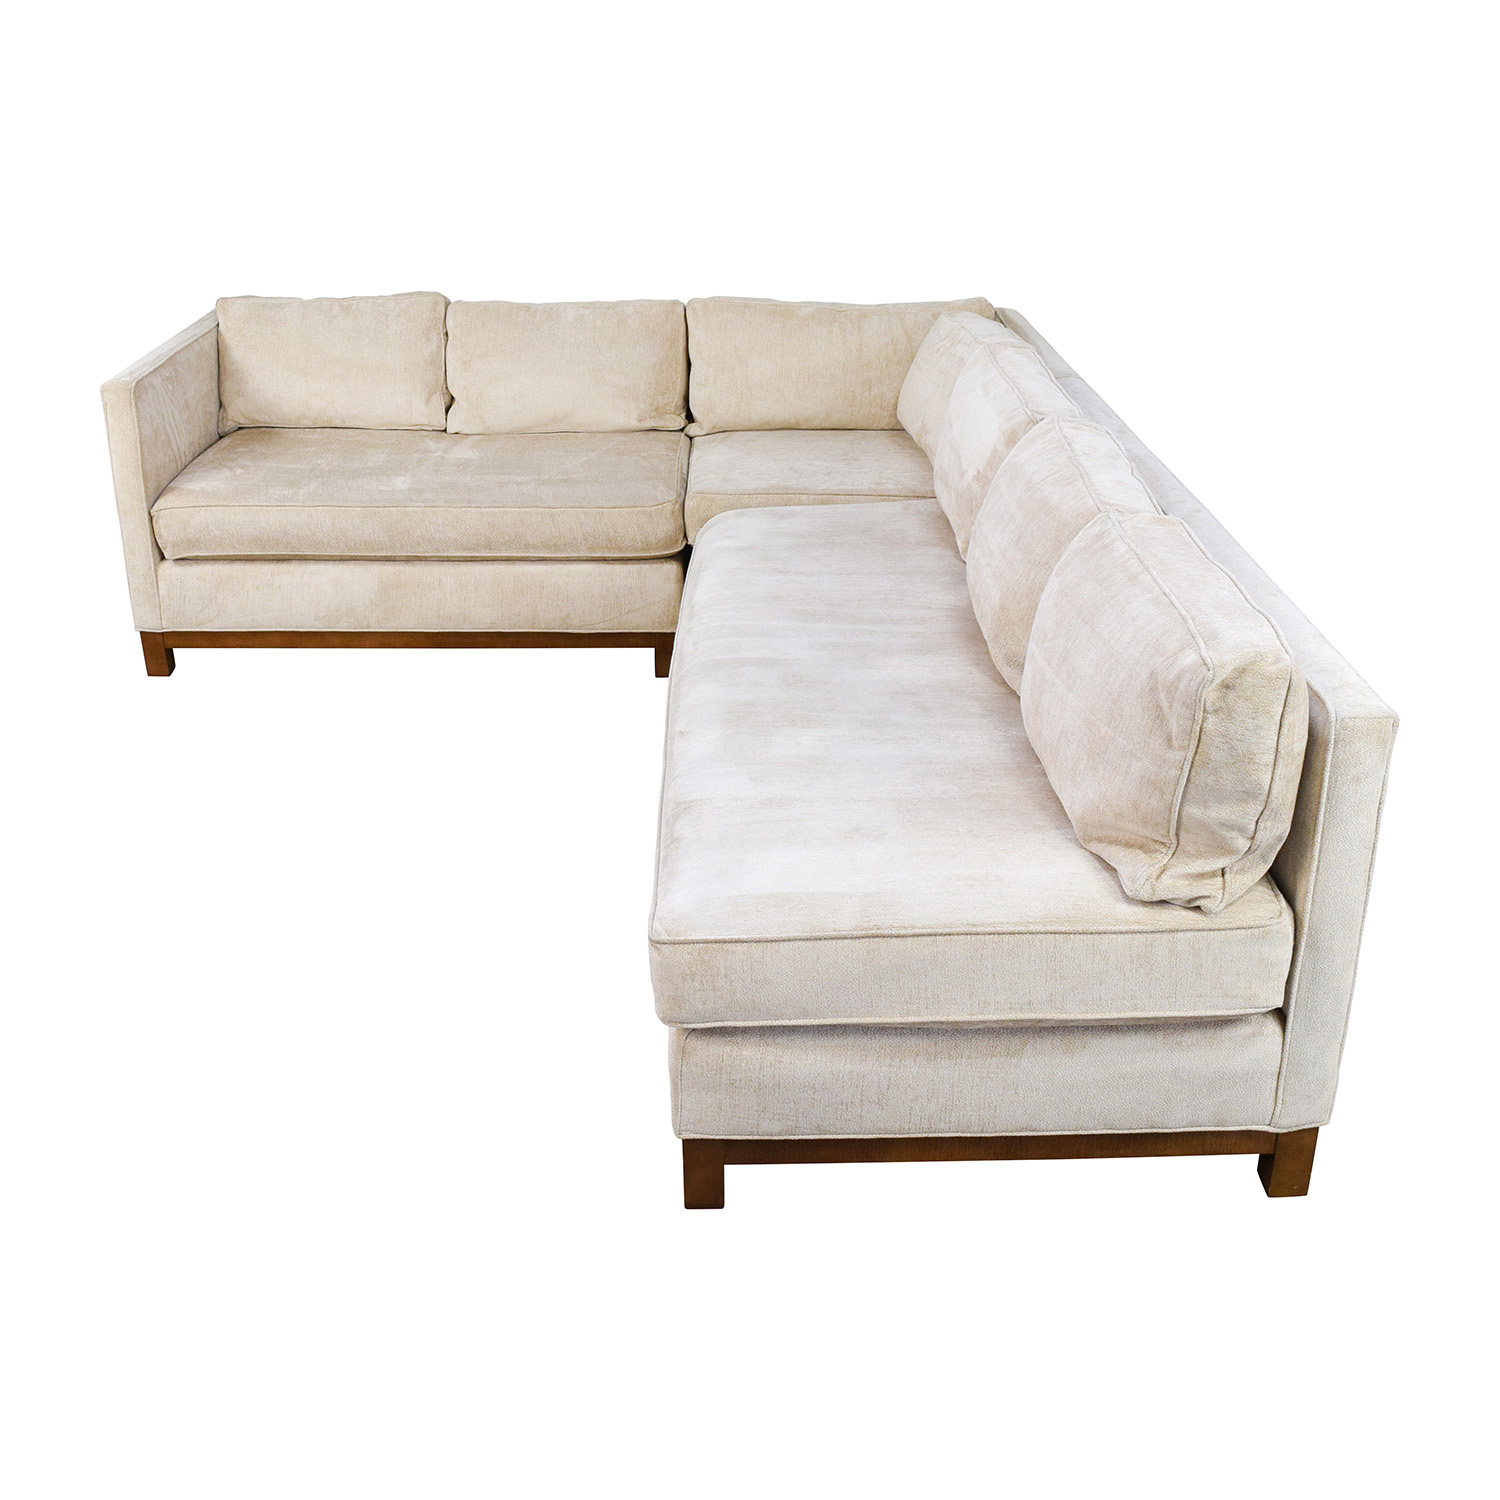 Mitchell Gold and Bob Williams Mitchell Gold + Bob Williams Clifton Collection Sectional nyc